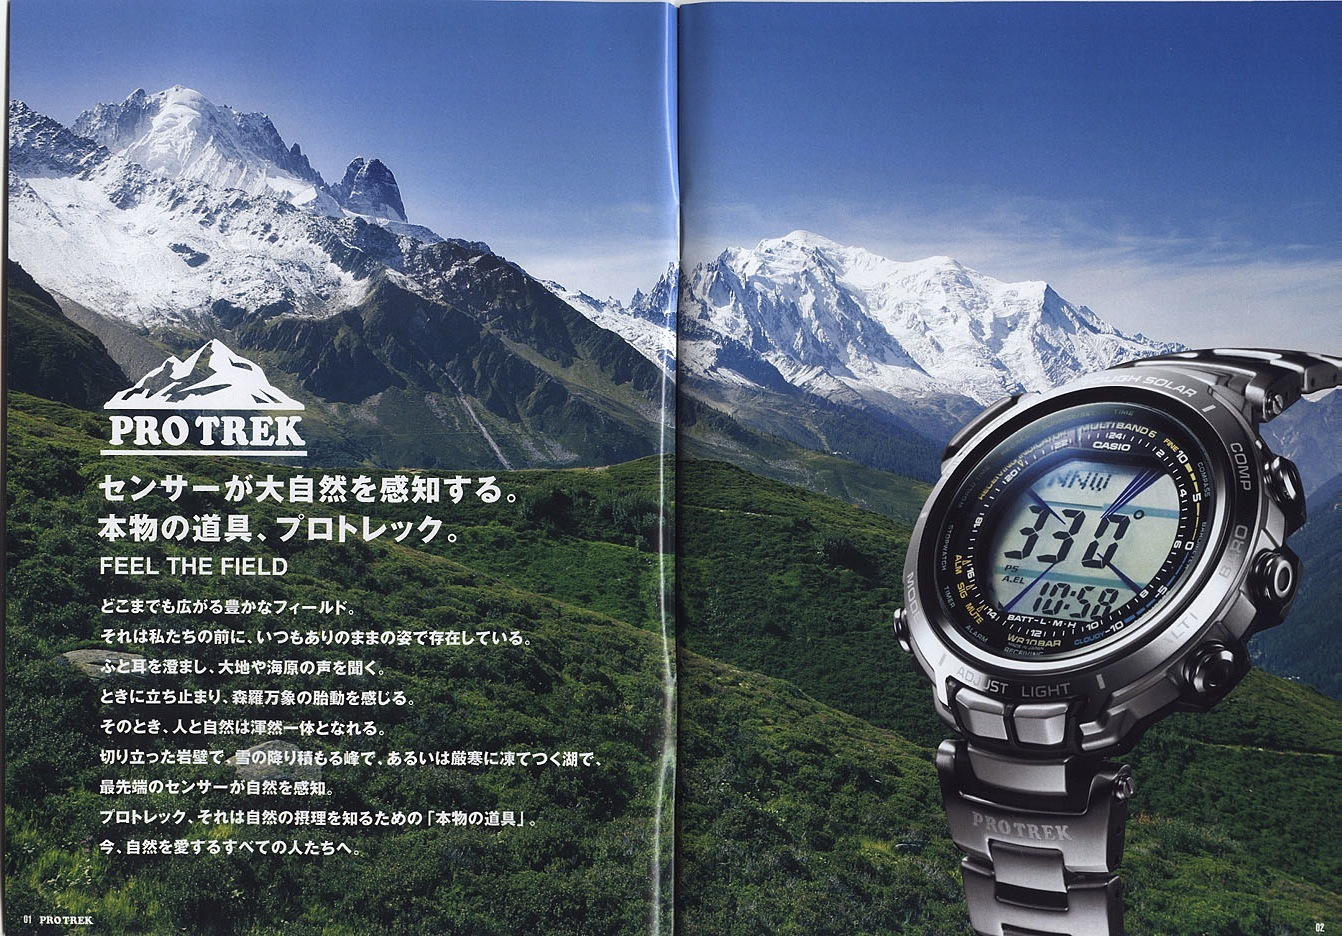 Casio-Pro-Trek-Collection-Summer-2009-Page-2.jpg